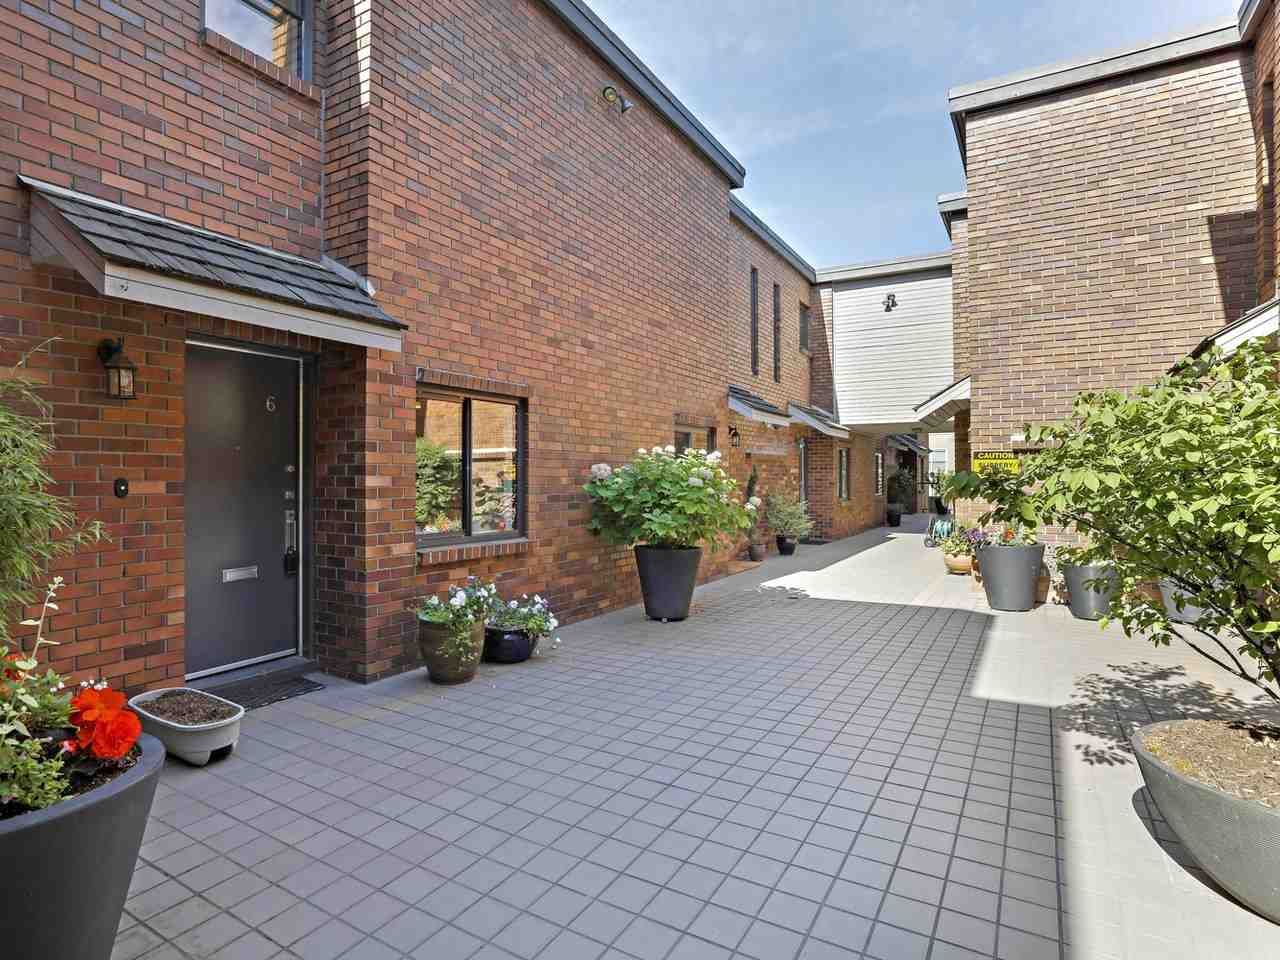 """Main Photo: 6 960 W 13TH Avenue in Vancouver: Fairview VW Townhouse for sale in """"BRICKHOUSE"""" (Vancouver West)  : MLS®# R2381516"""